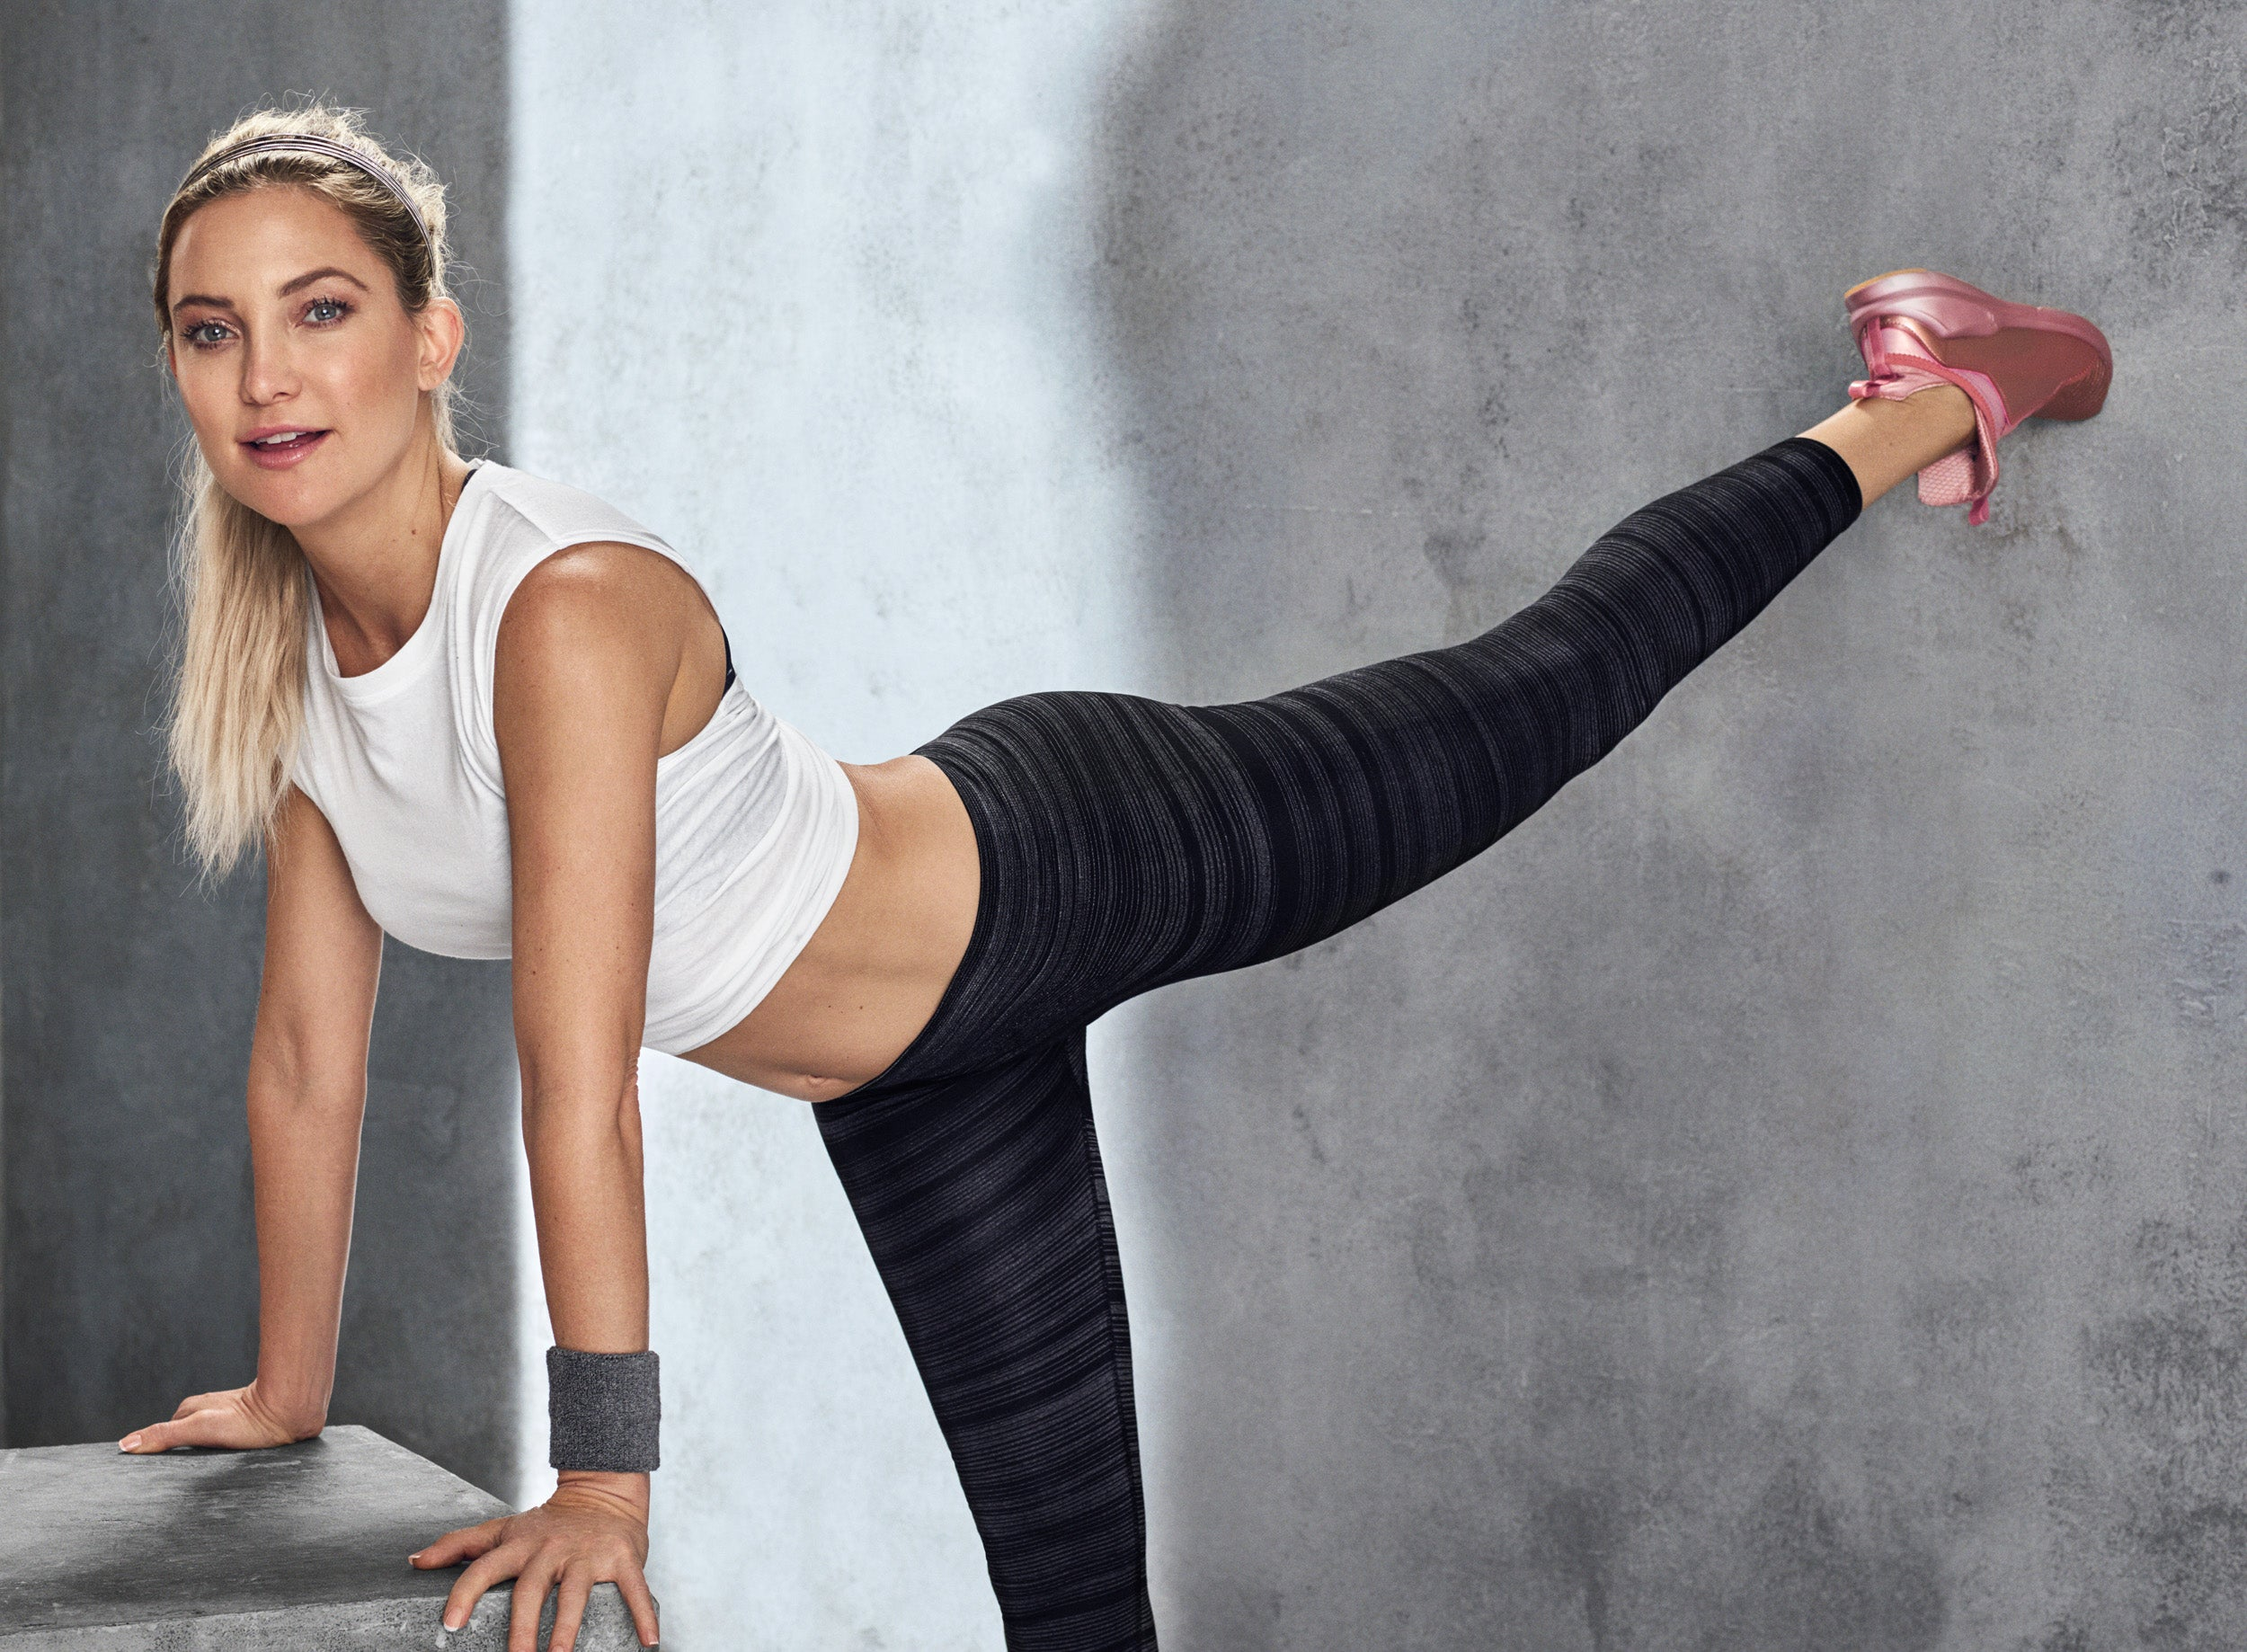 """de00061af421a7 """"And I just didn't believe that a pair of high-quality yoga pants had to  cost that much. The idea behind Fabletics was really to make fitness and  fashion ..."""